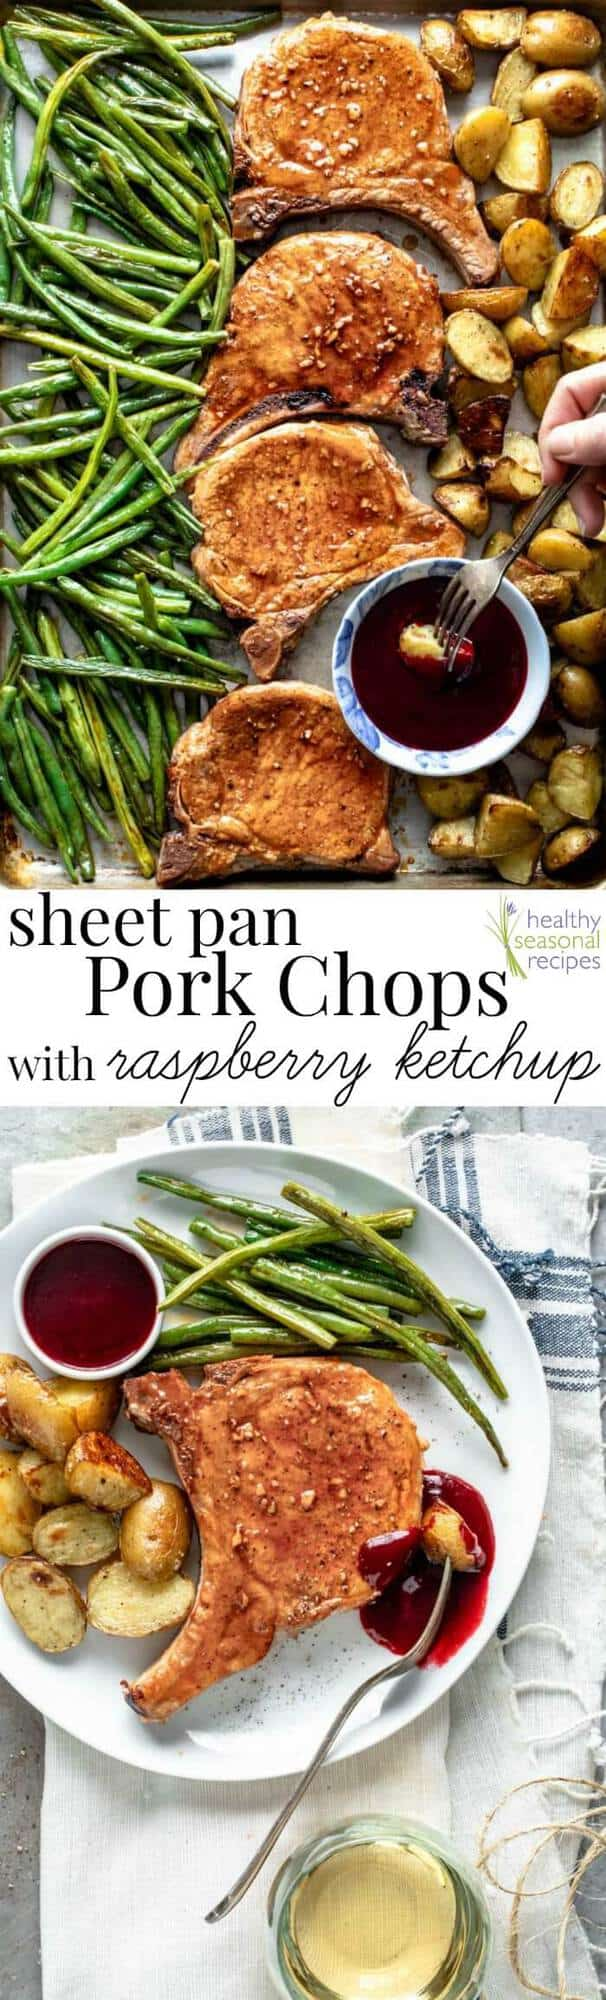 collage of Pork Chop and Raspberry